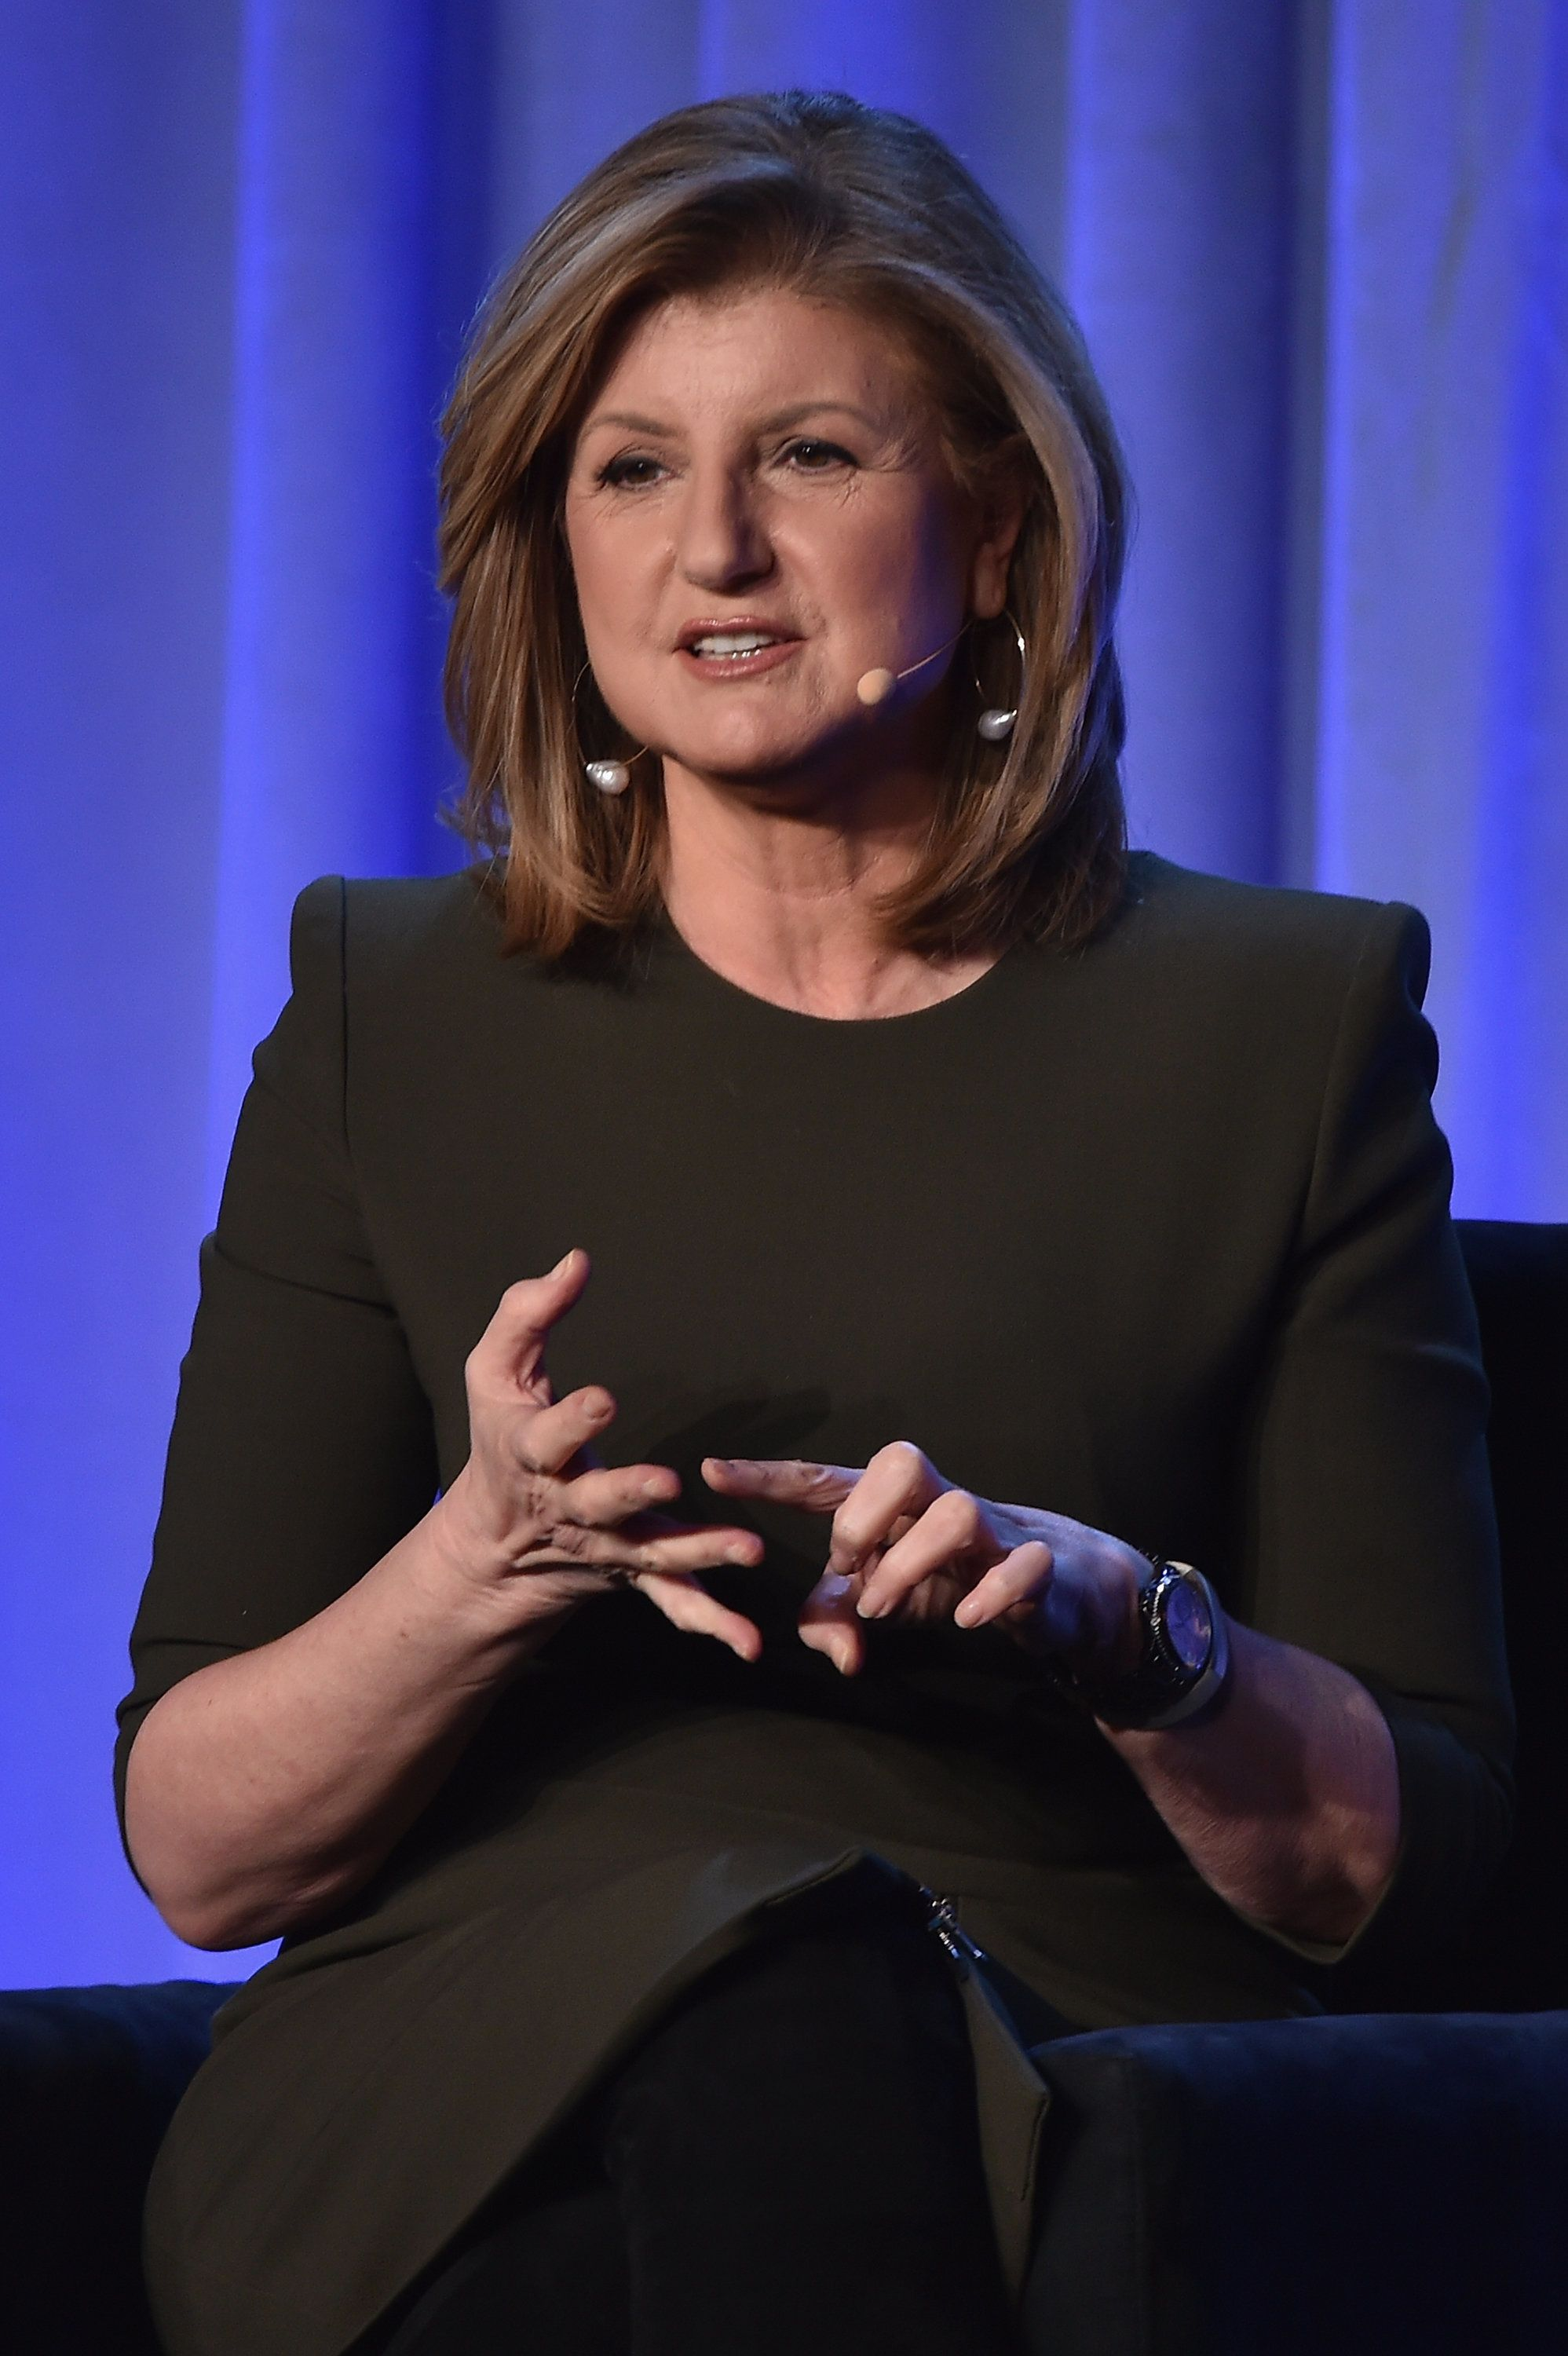 NEW YORK, NY - FEBRUARY 02:  Arianna Huffington, co-founder, president and editor in chief, Huffington Post Media Group speaks onstage at the American Magazine Media Conference at Grand Hyatt New York on February 2, 2016 in New York City.  (Photo by Larry Busacca/Getty Images for Time Inc)